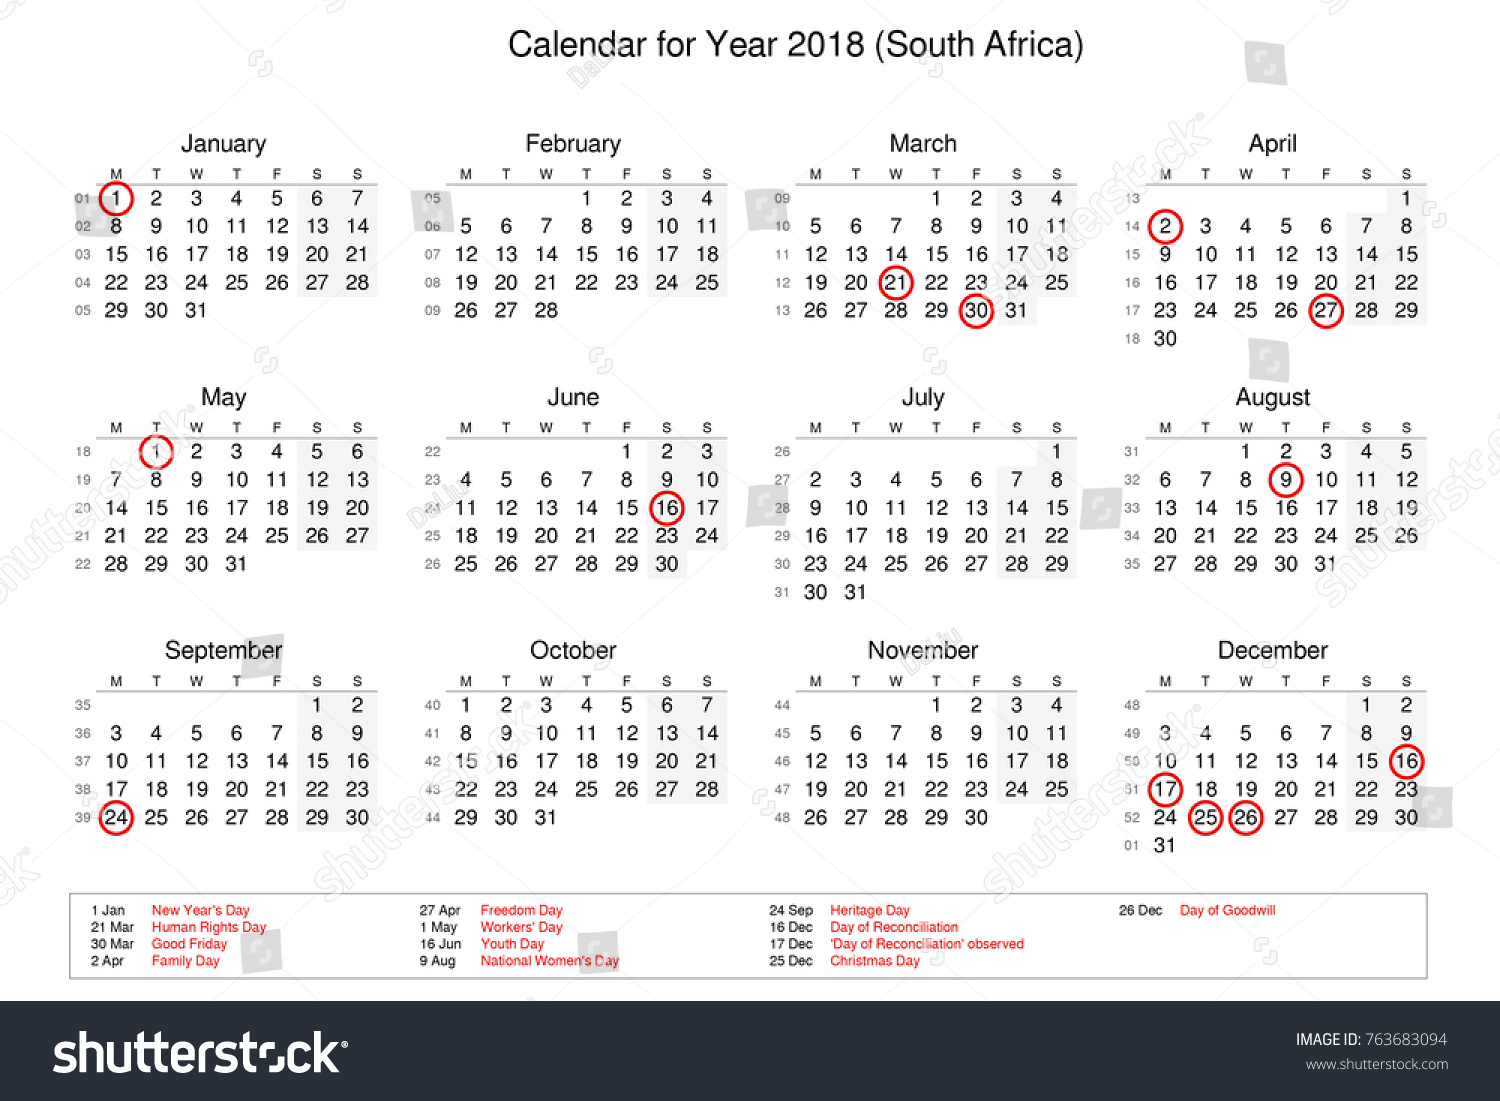 calendar of year 2018 with public holidays and bank holidays for south africa